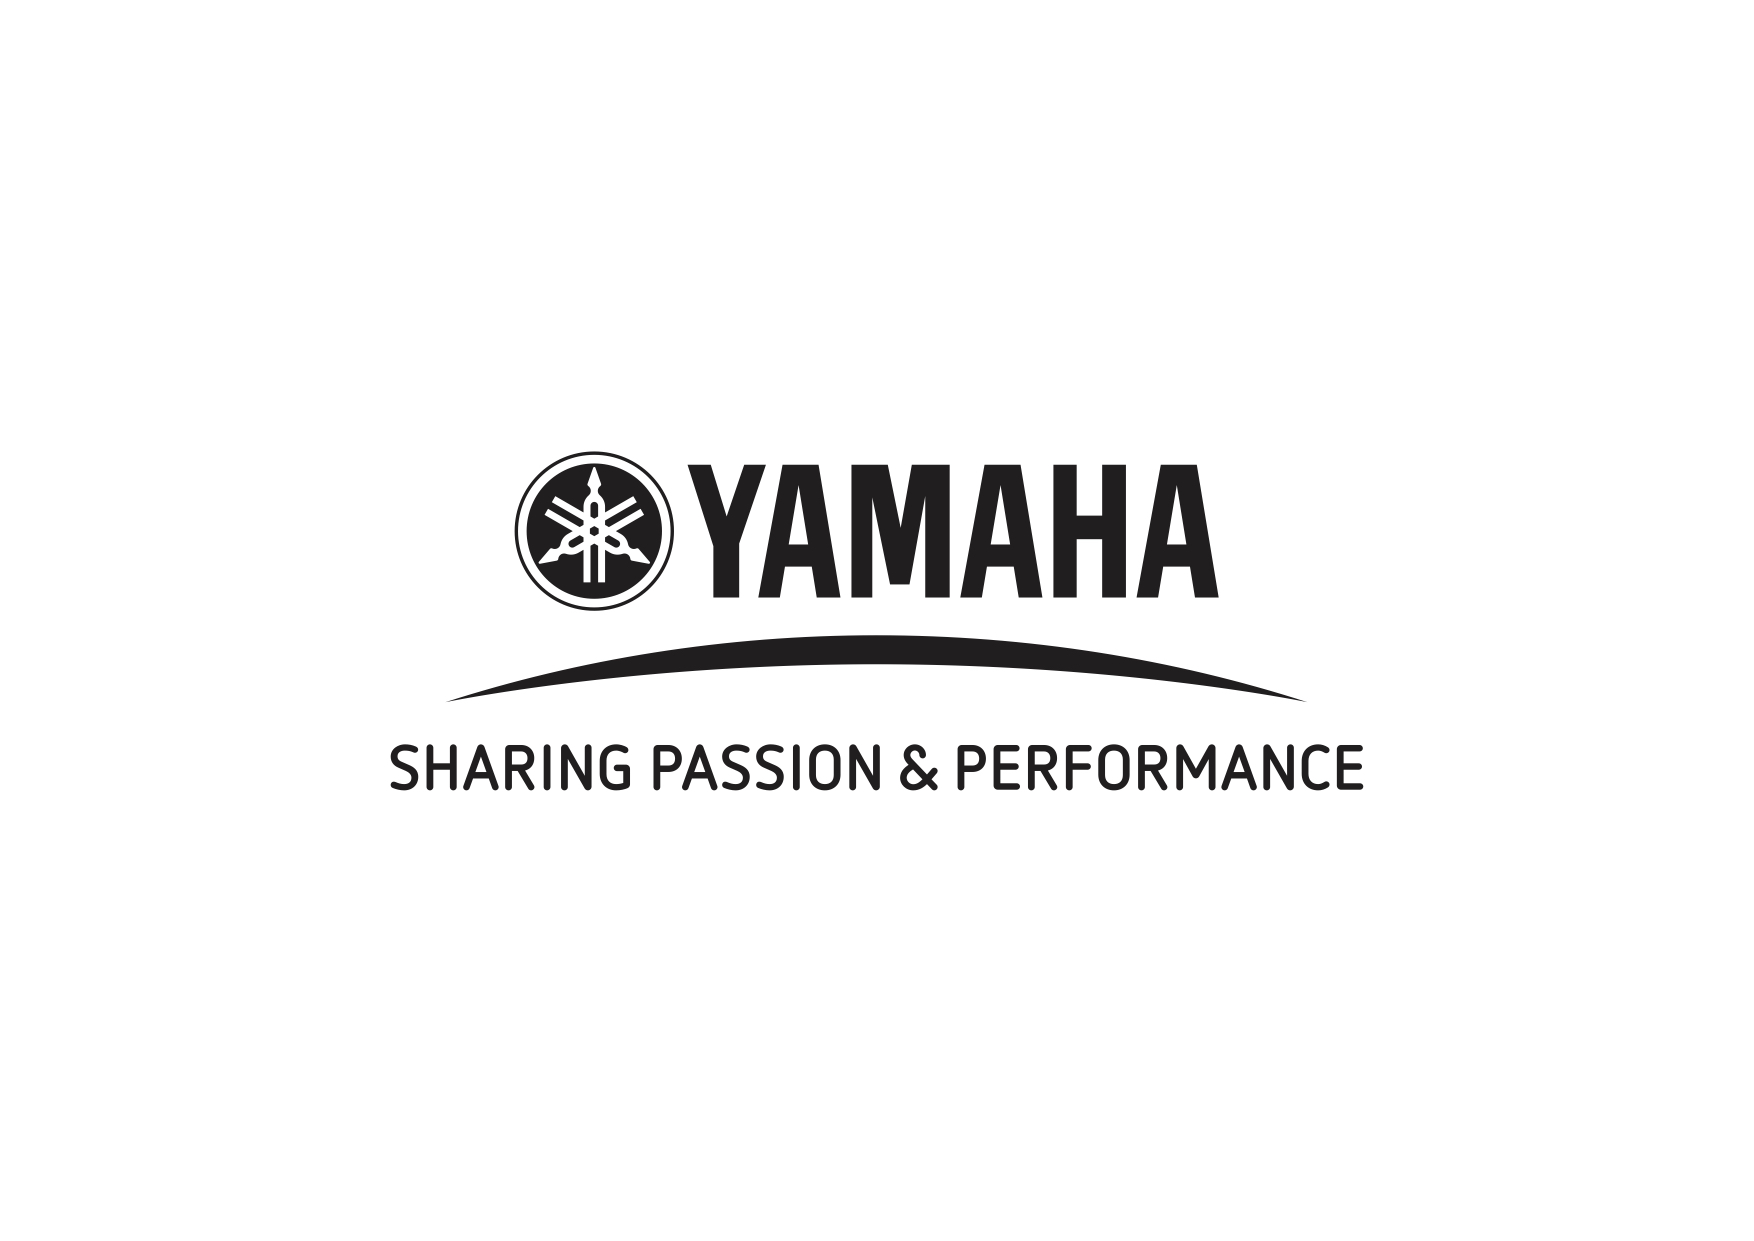 Yamaha Reimagines 2016 NAMM Show, Launches Over 100 New